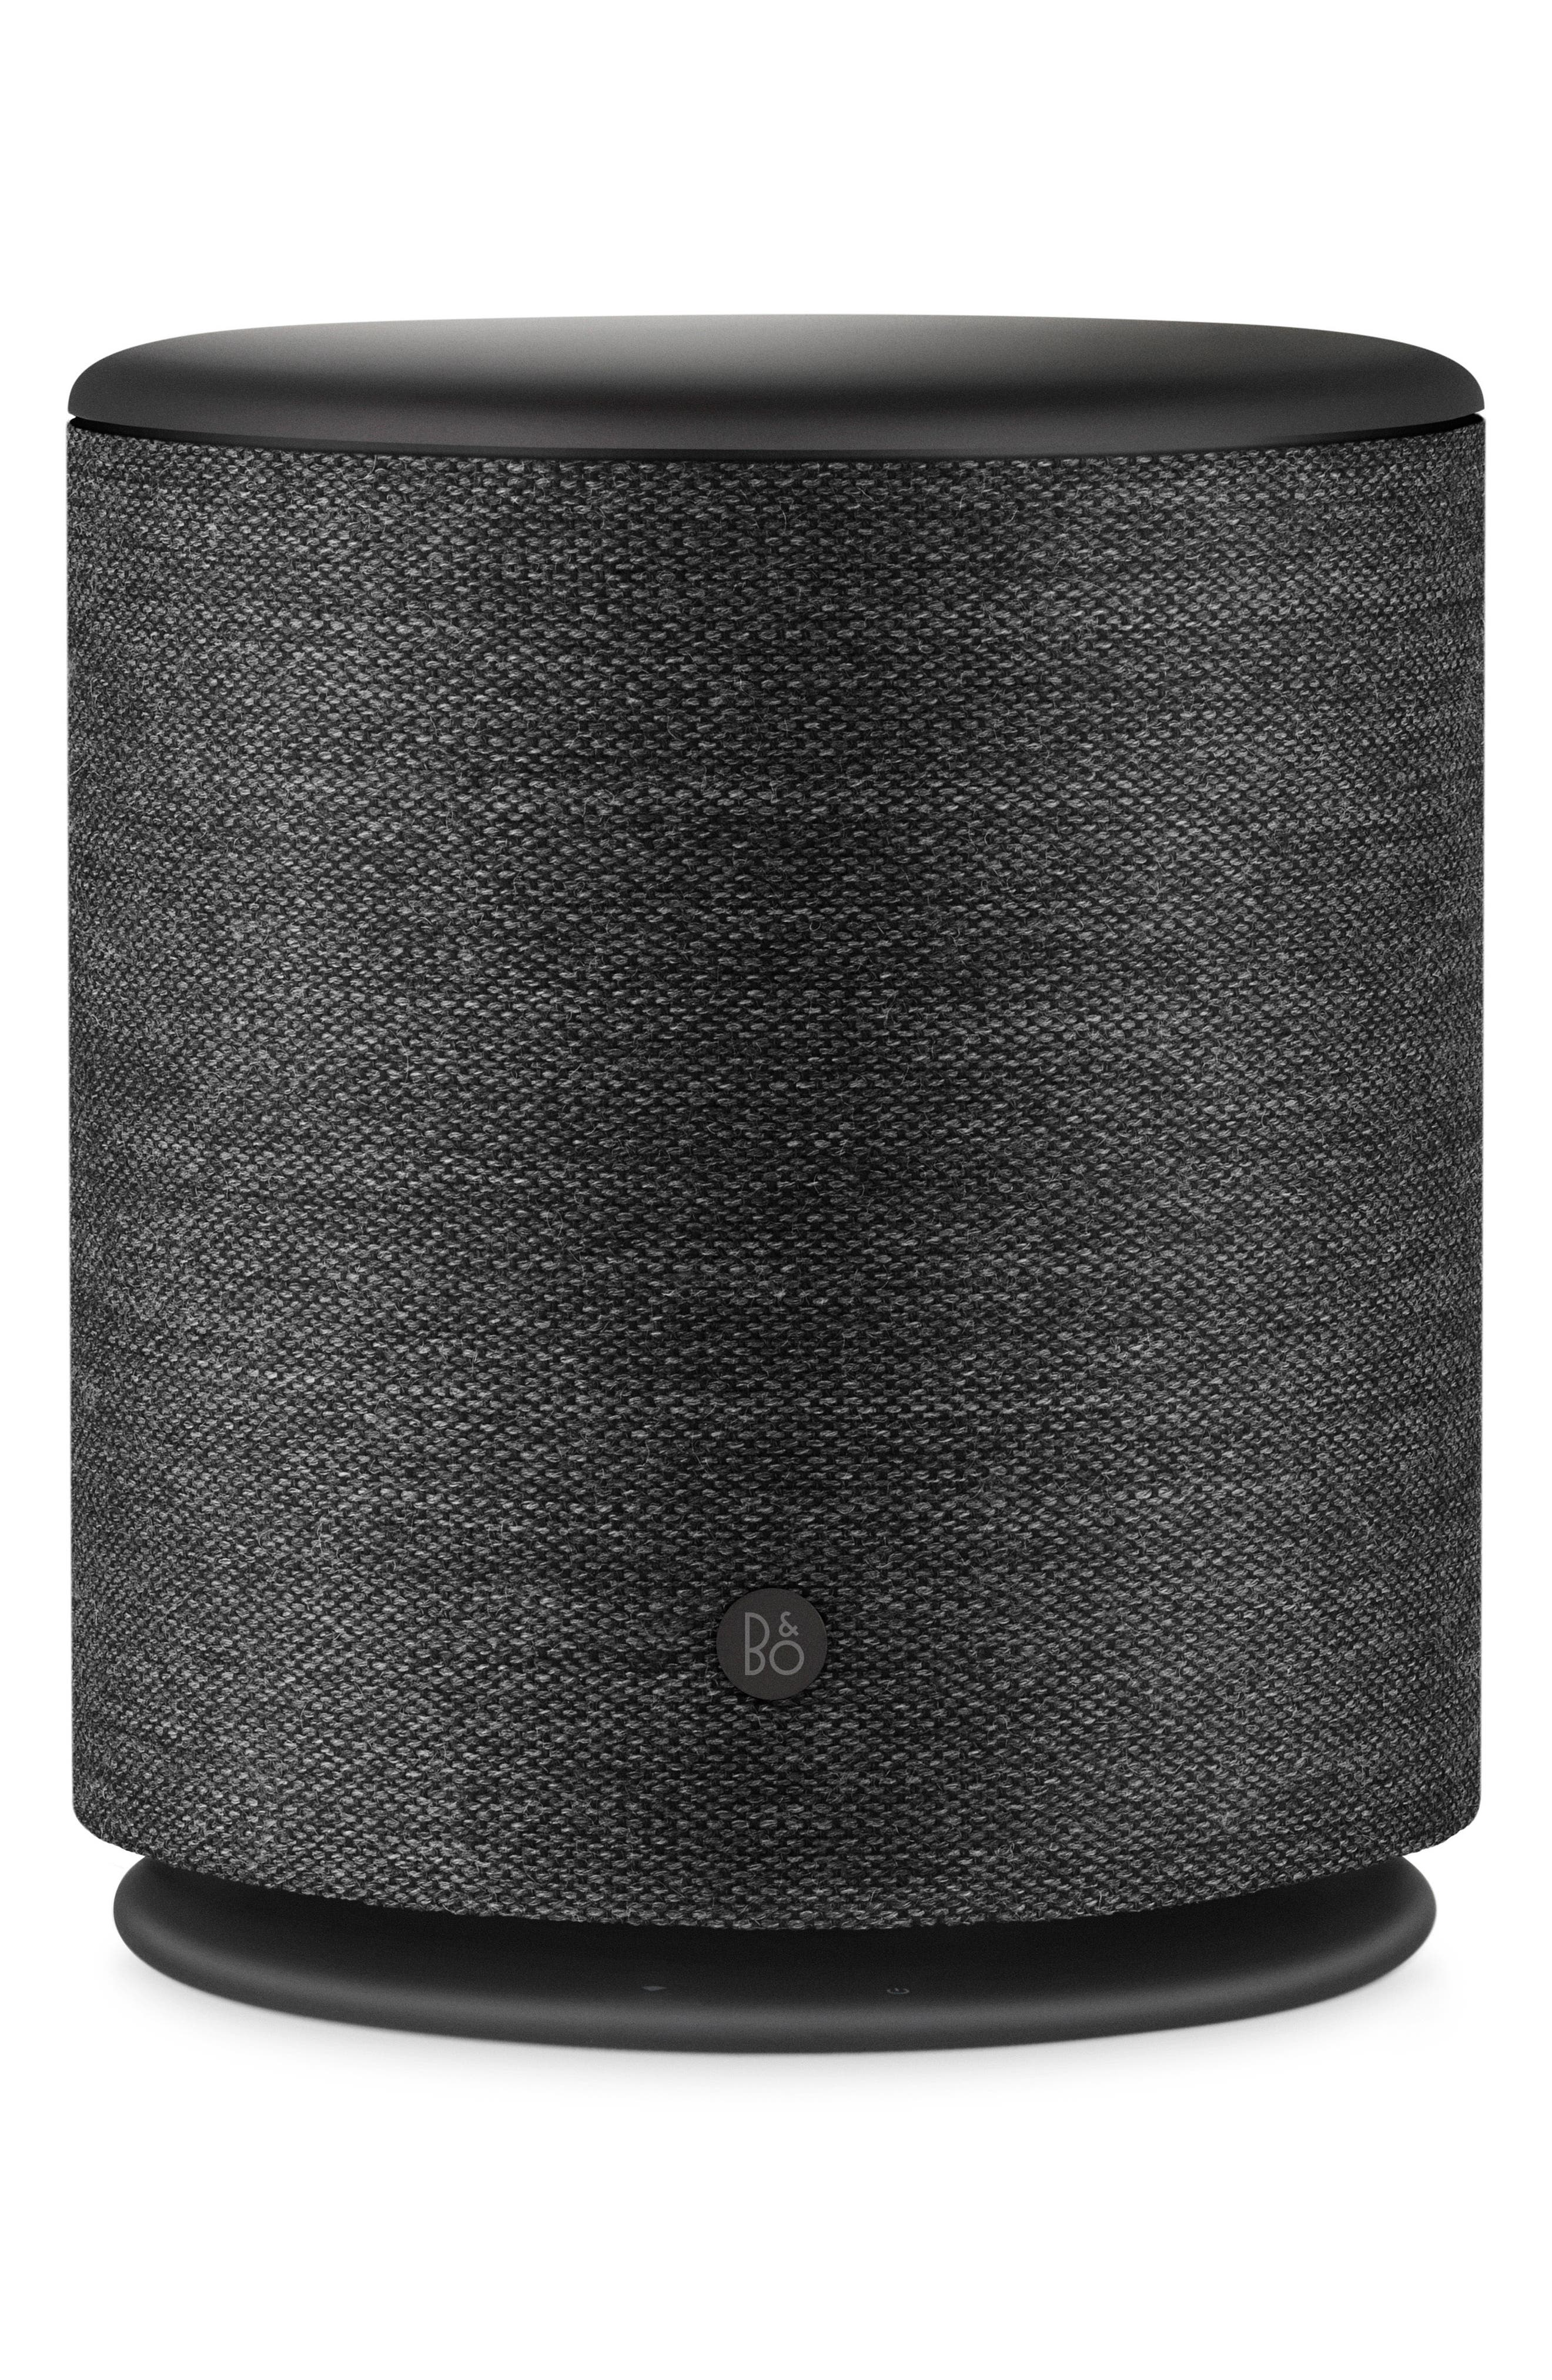 Alternate Image 2  - B&O PLAY M5 Connected Wireless Speaker